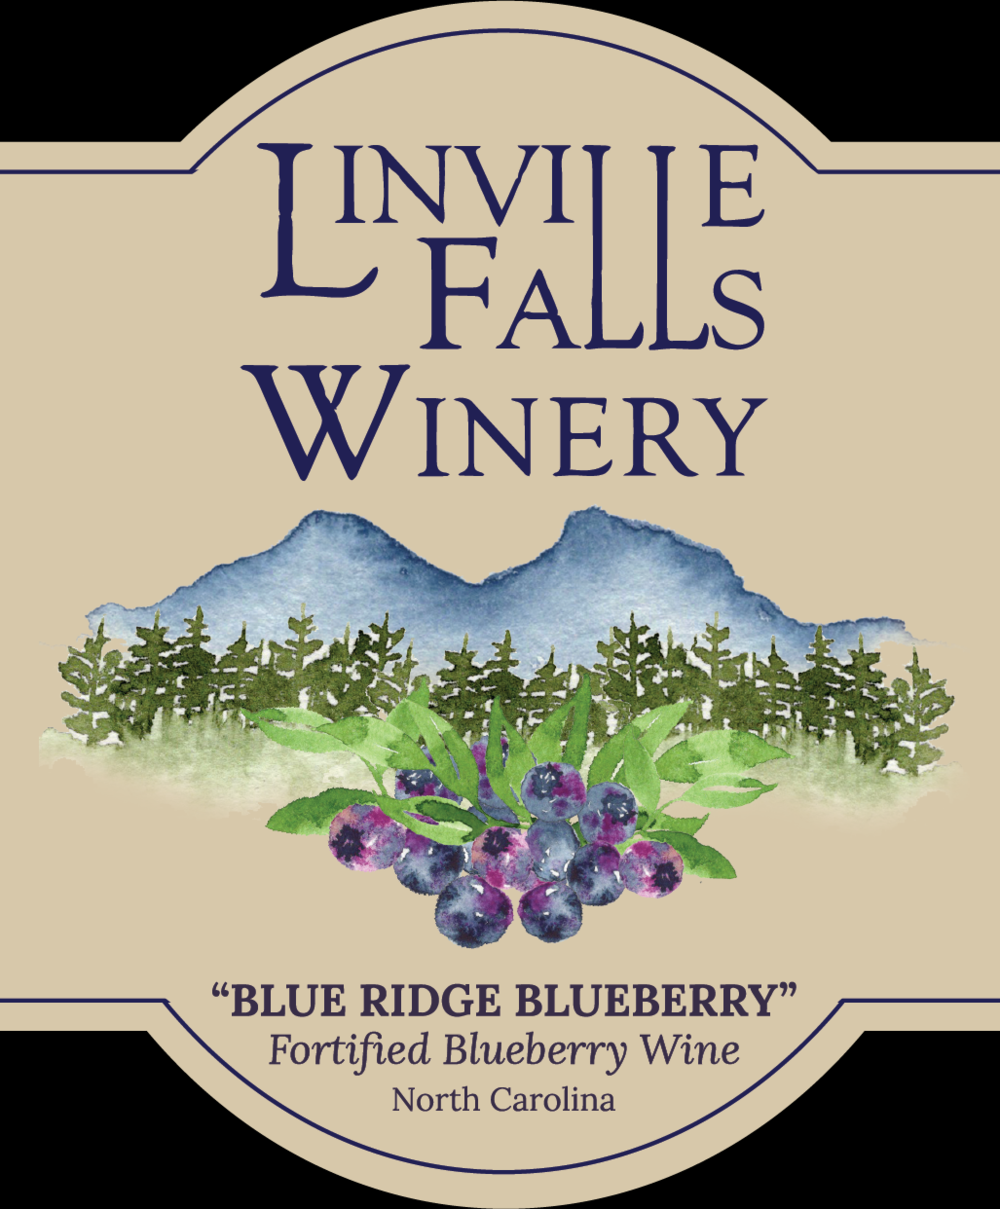 Blue Ridge Blueberry - Is there anything better than fresh, mountain blueberries? How about fresh mountain blueberry wine, fortified with local apple brandy!